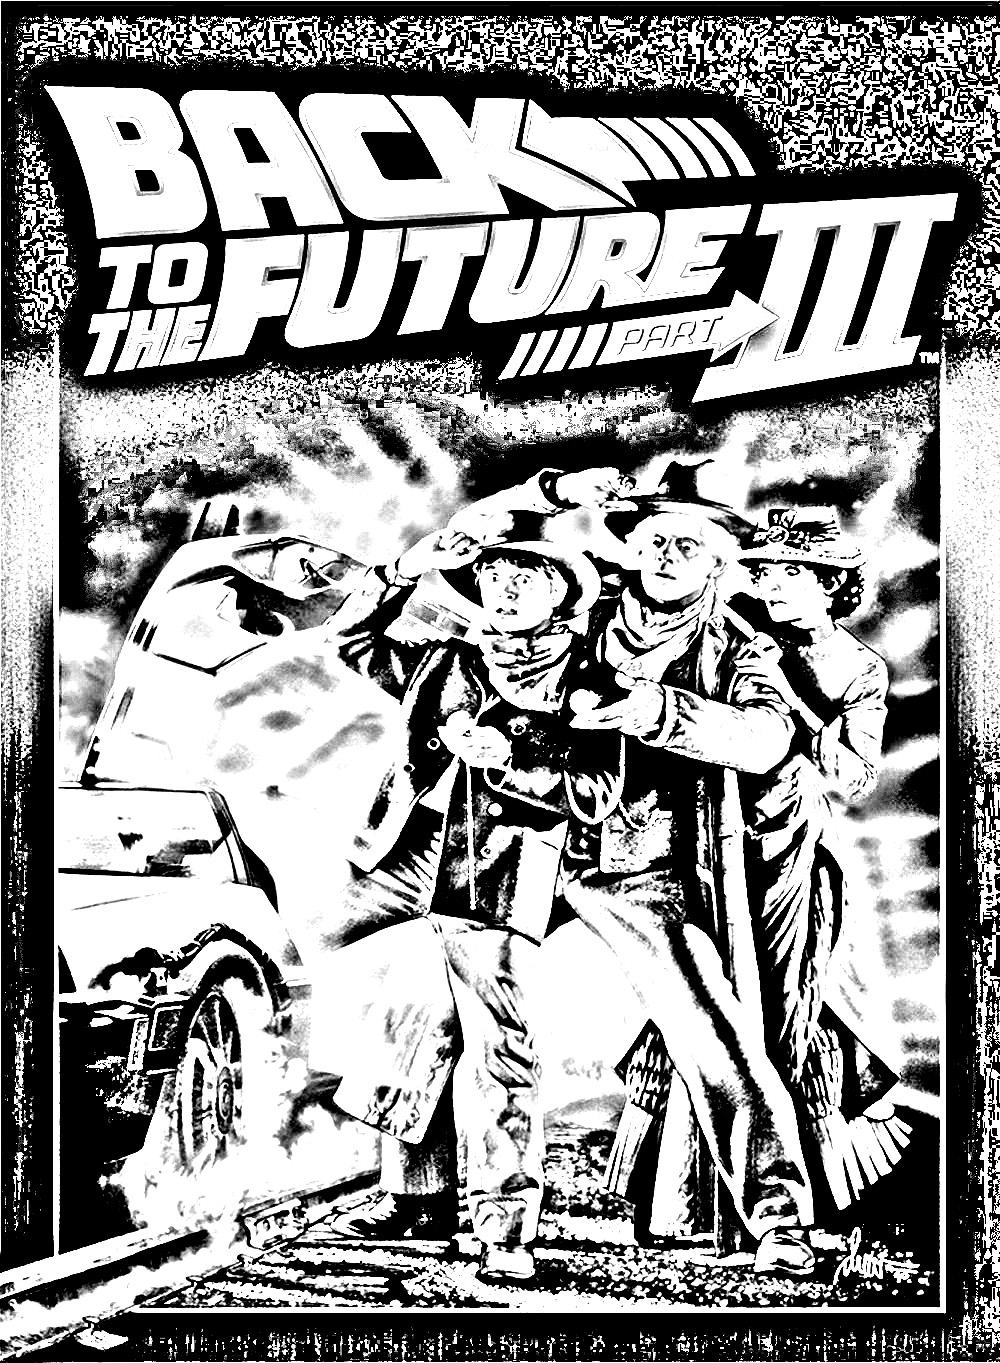 Movie retour vers le futur 3 movies adult coloring pages Coloring book poster